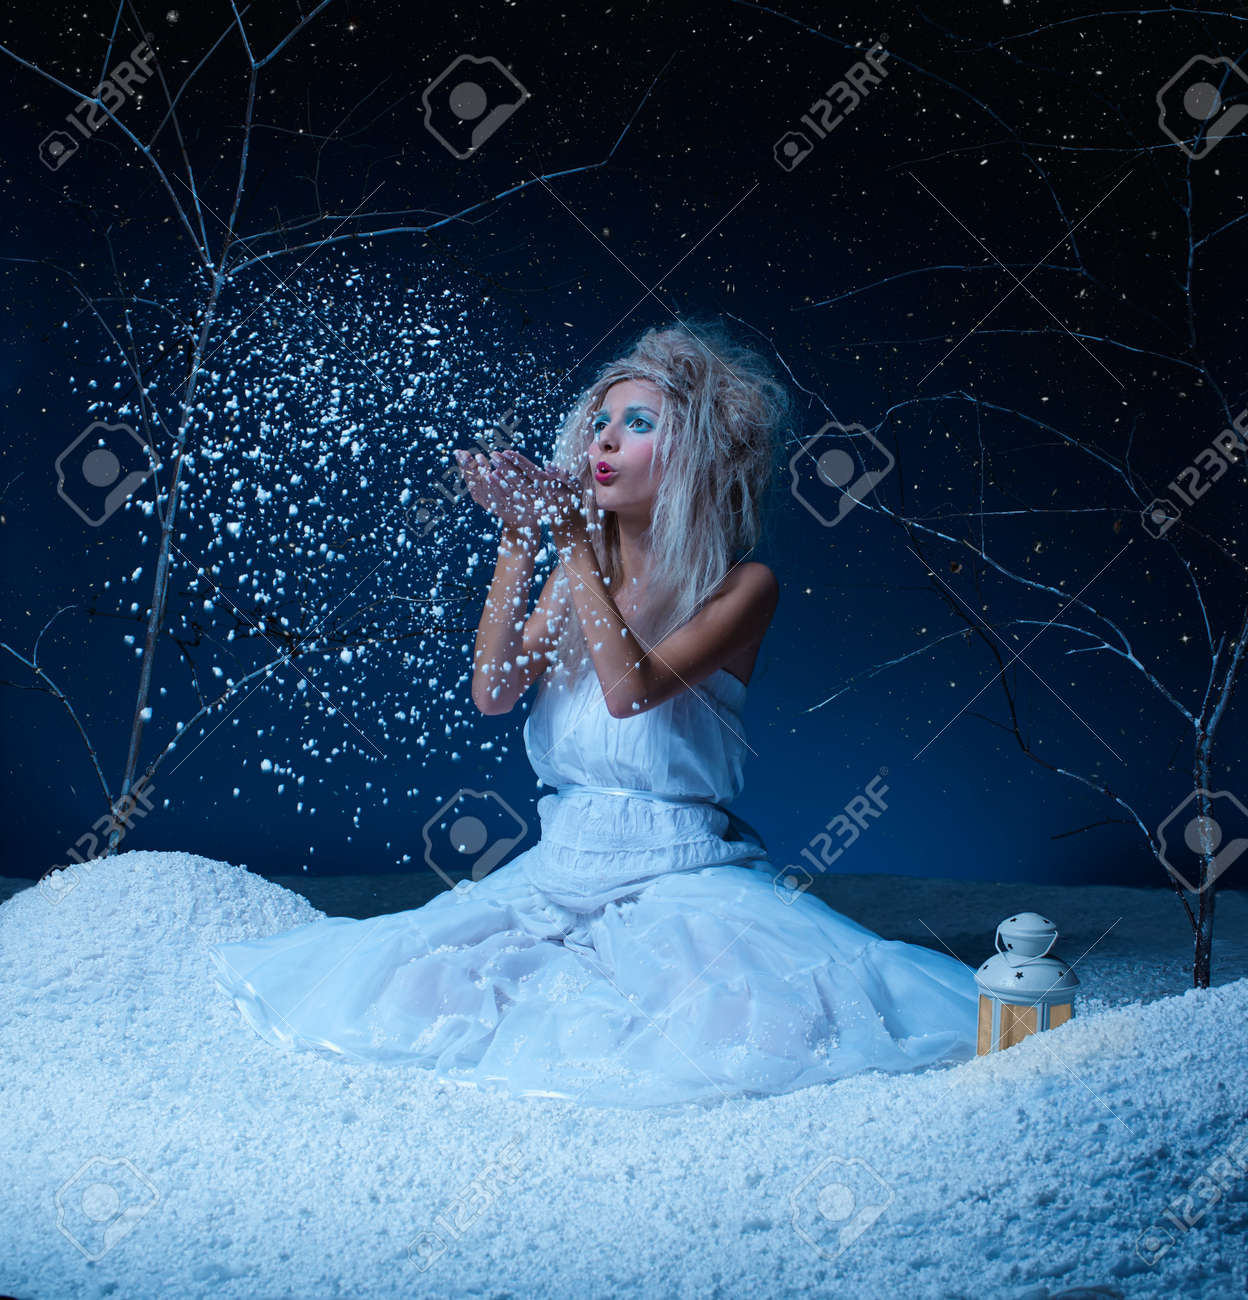 portrait of beautiful frozen fairy nymph girl sitting on snow and blowing snowflakes from her hands Stock Photo - 8305736